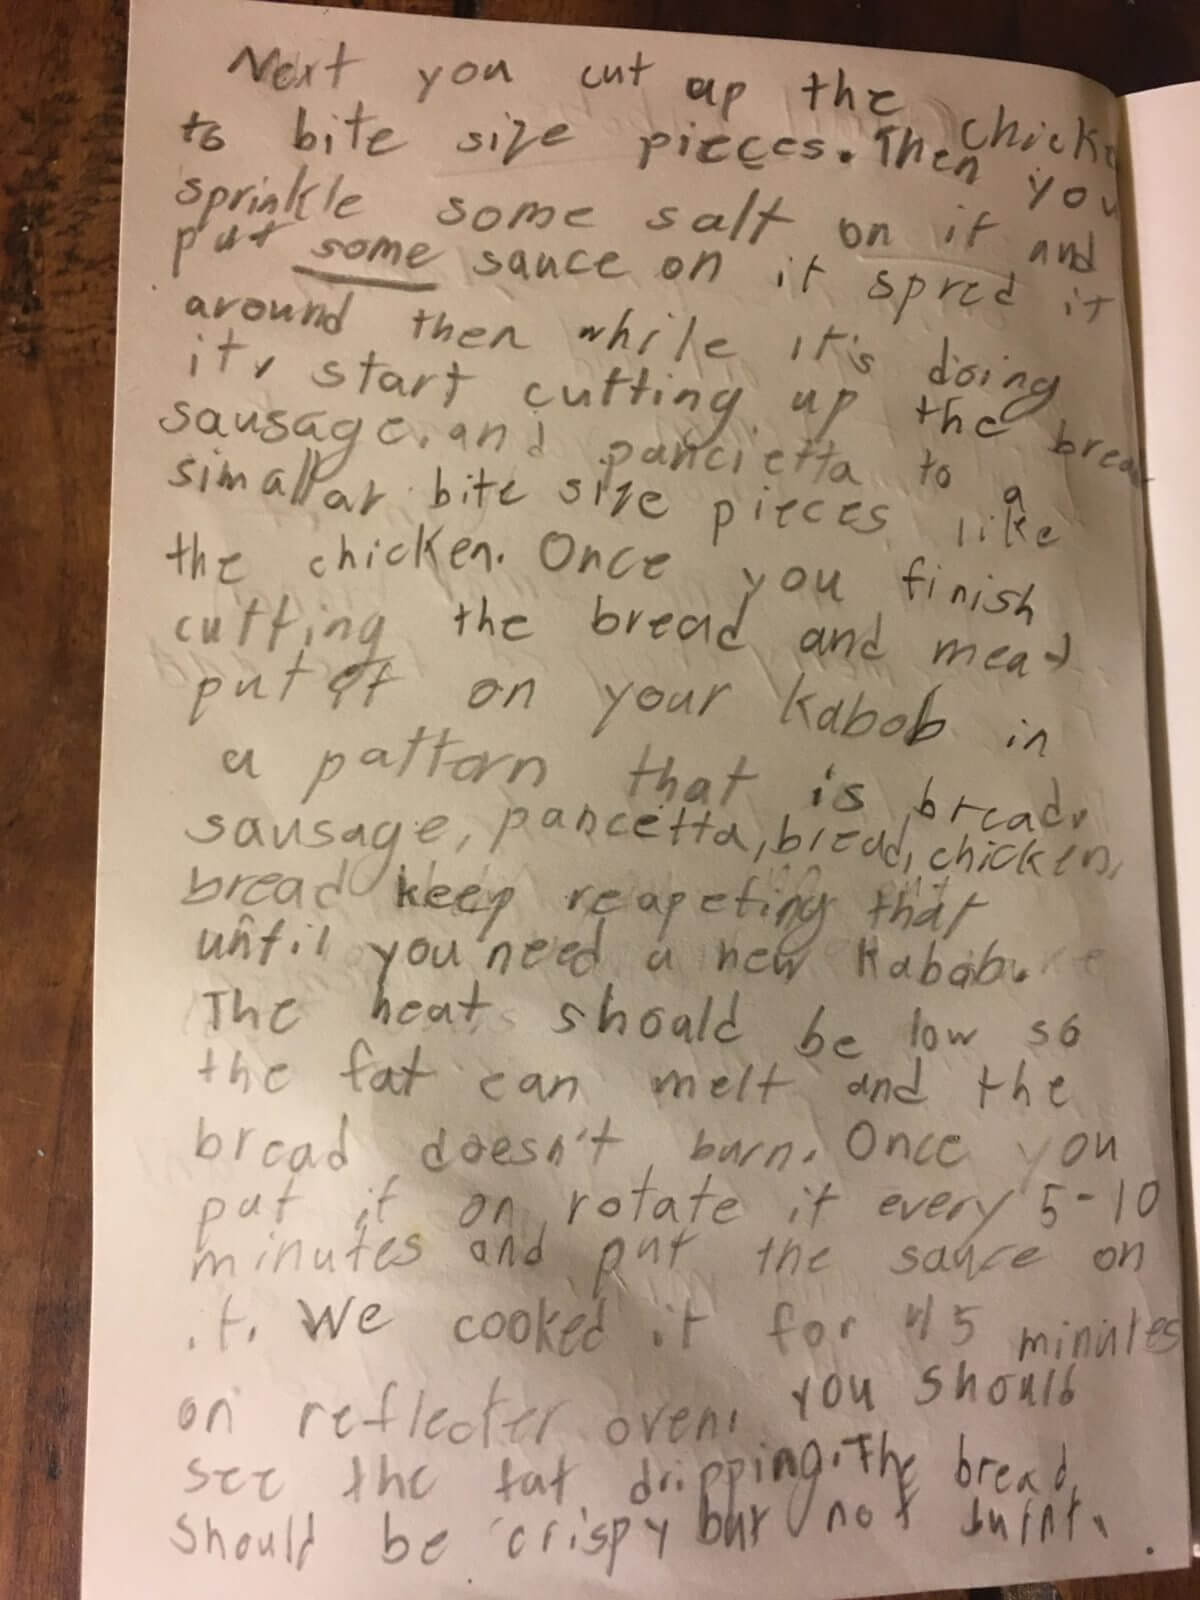 This is a set of instructions for making a quail kabob written by a nine=year-old.